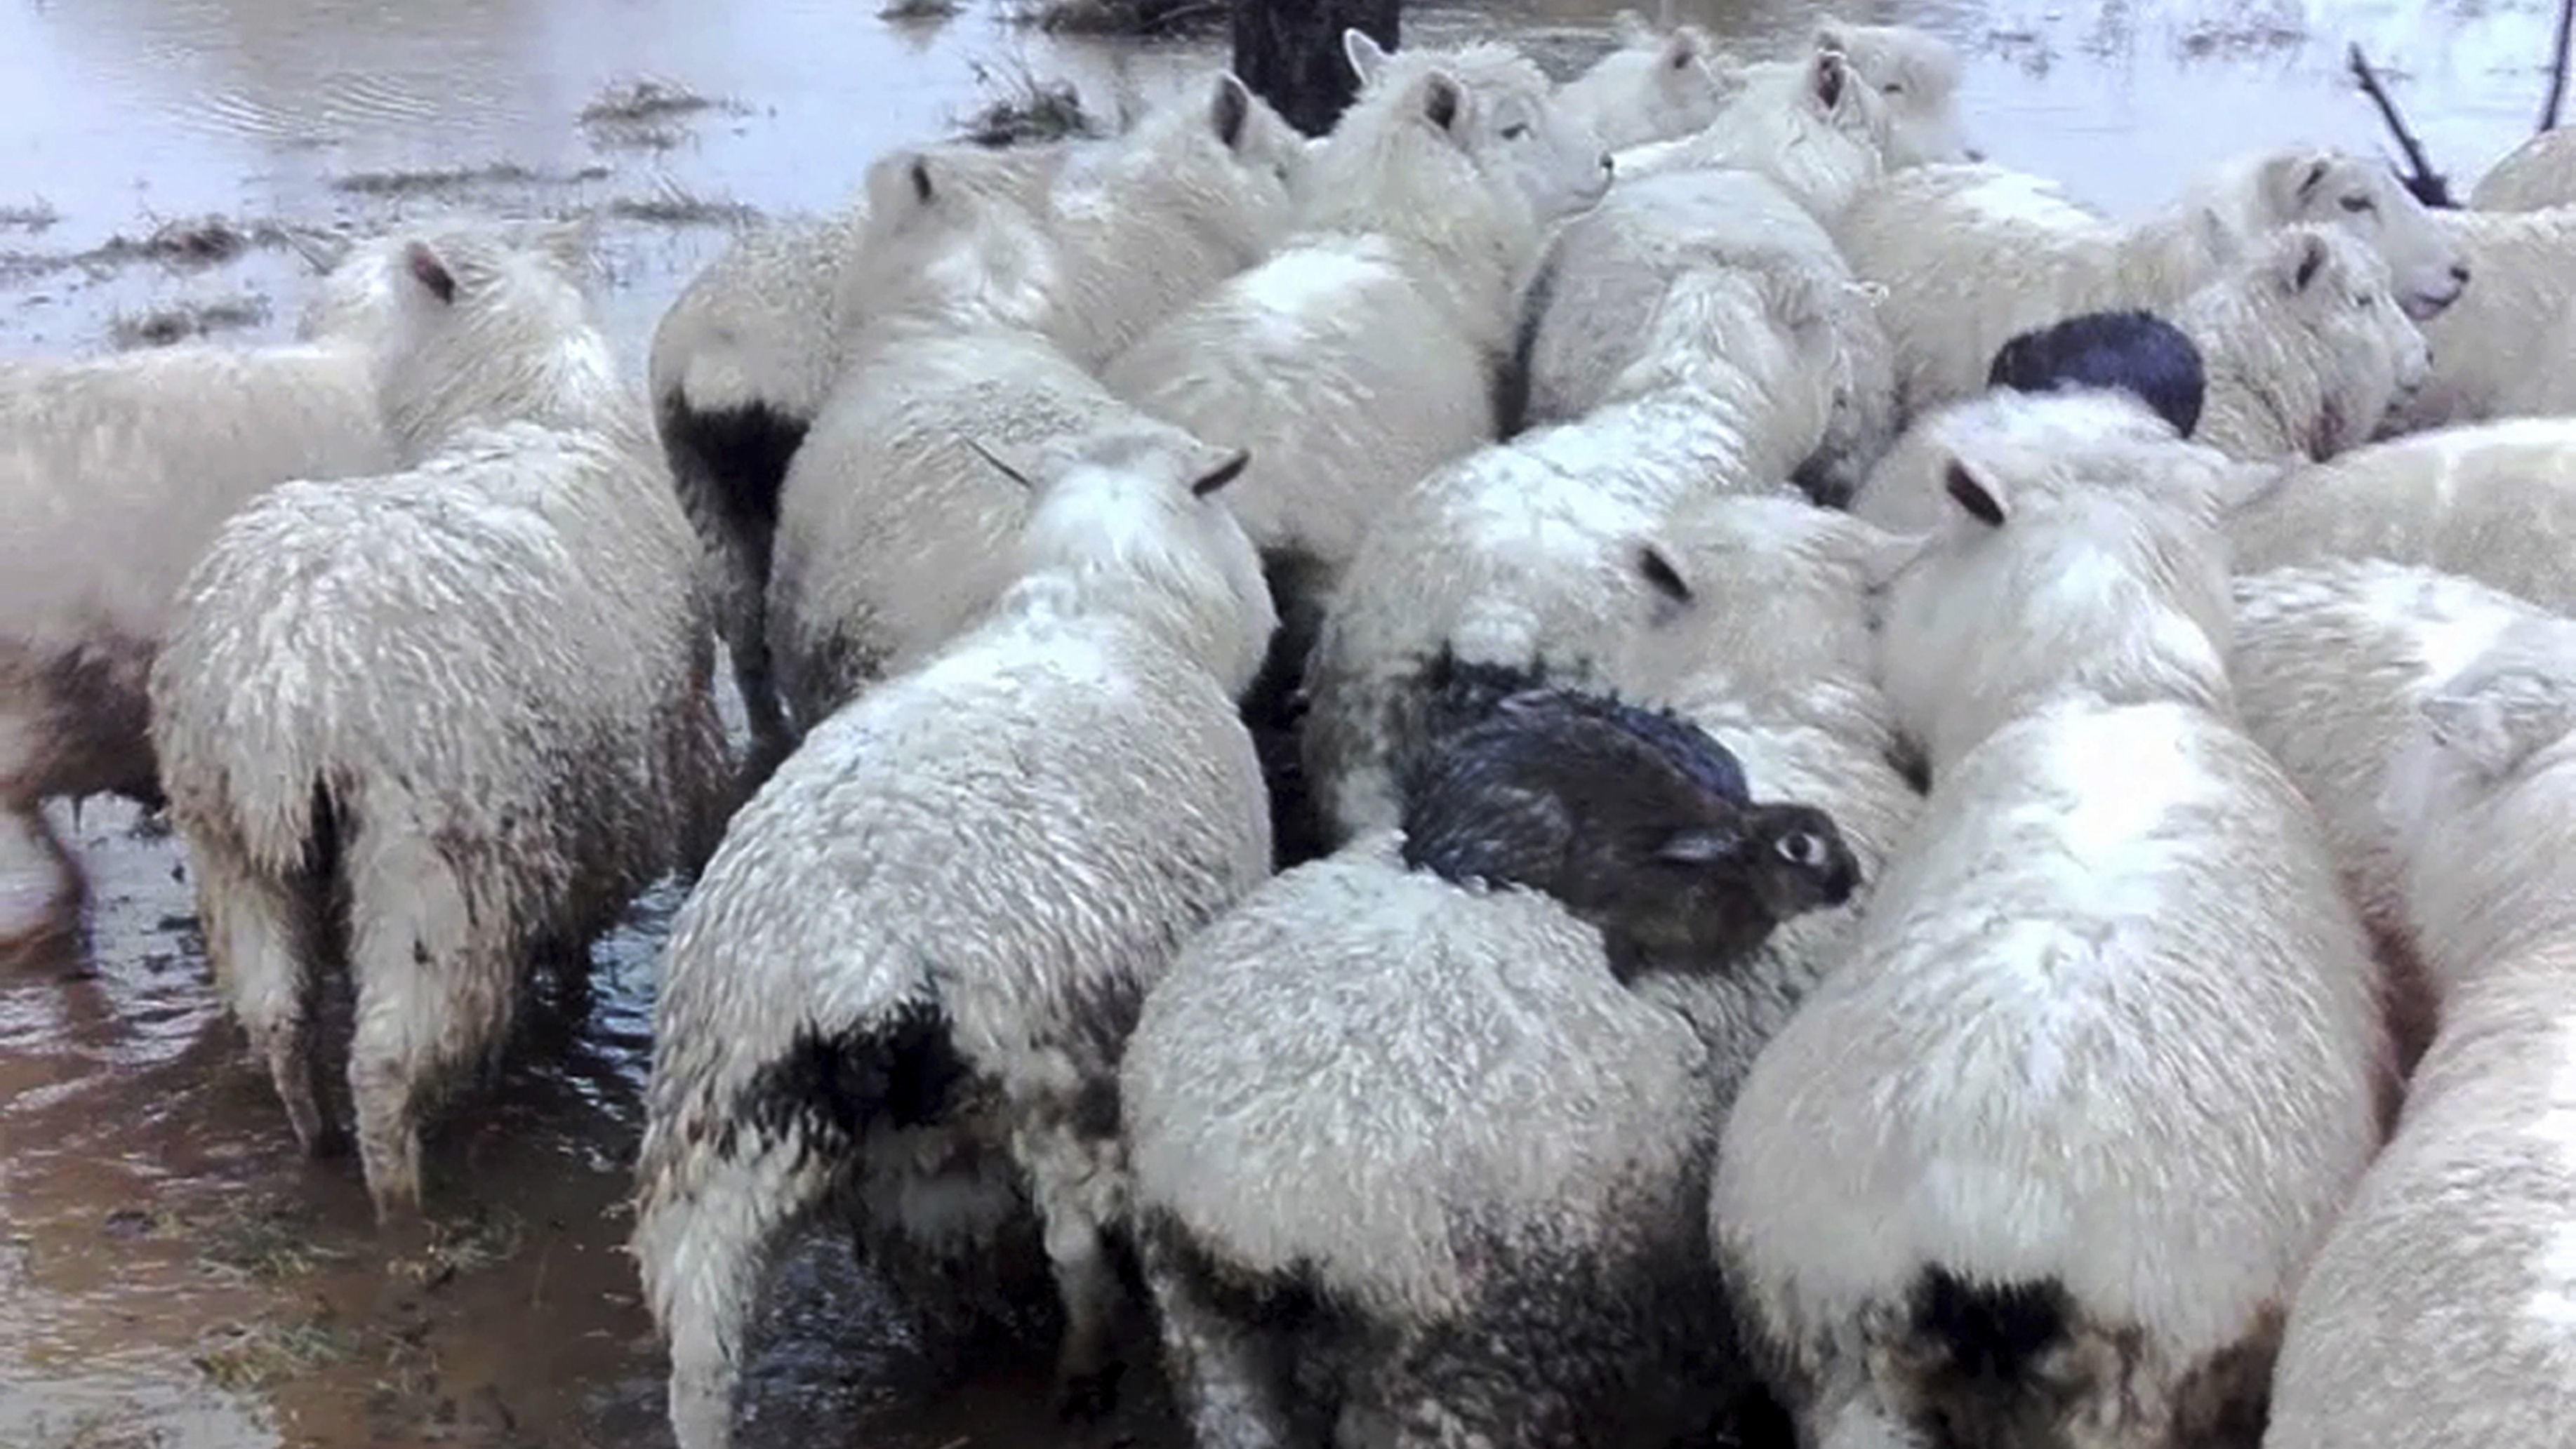 Wild Rabbits Caught Hitchhiking On Sheep To Escape Flood